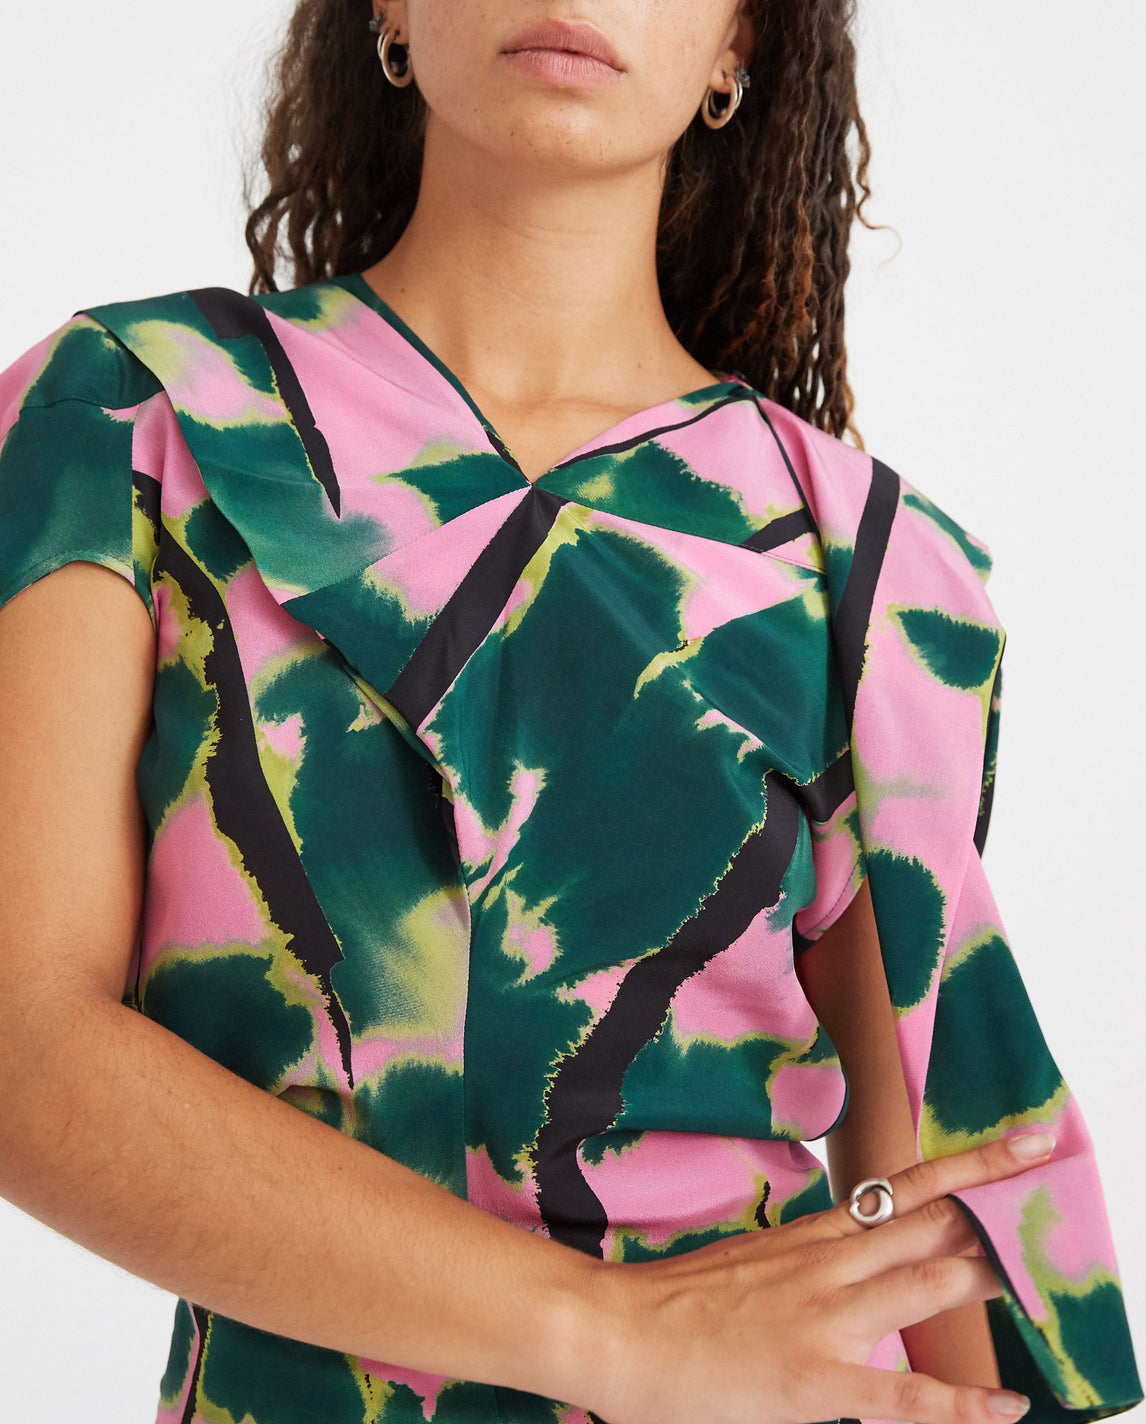 Tiger Tail Soufle Scarf Dress - Green / Pink WOMENS COLVILLE